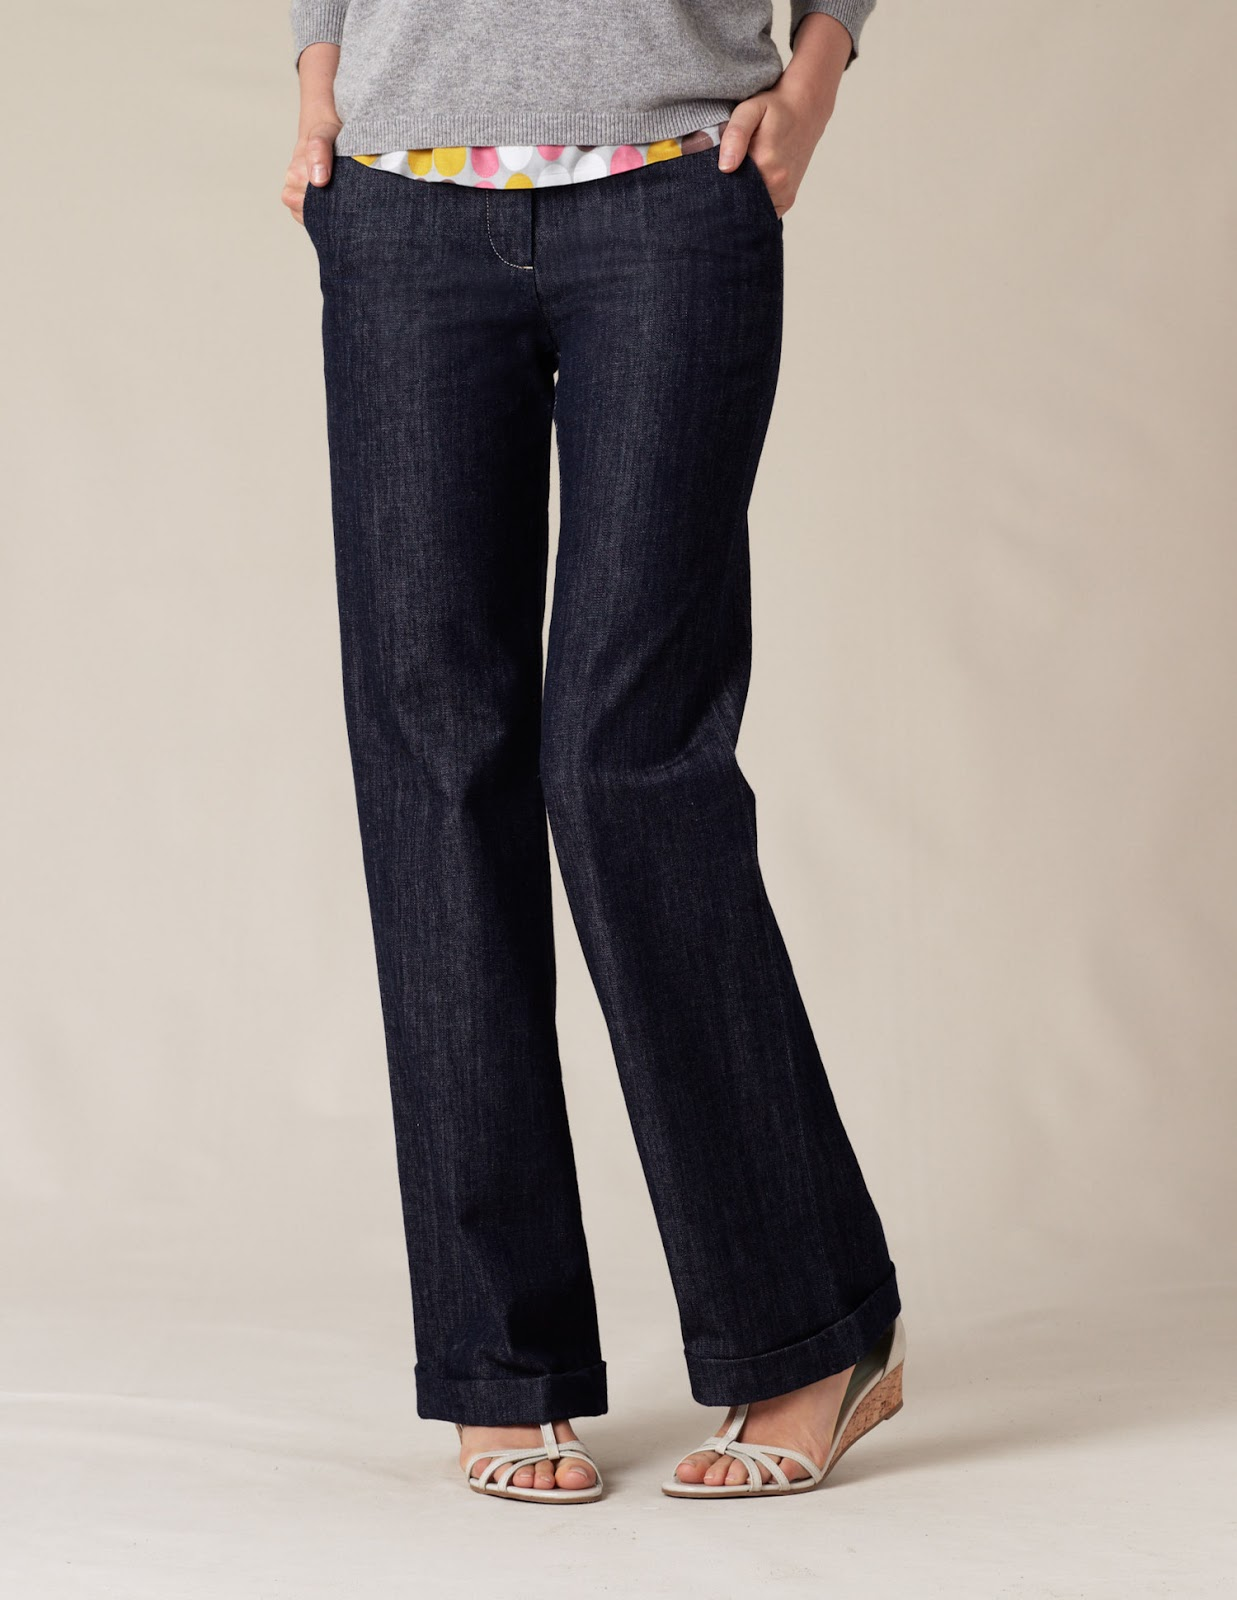 All-day comfort and fashion-forward style come together in the Wide-Leg Jeans from Universal Thread. The stretch-fabric denim lets you take on your day with comfortable support. Finished with a raw hem, these medium-wash wide-leg jeans can take you from day to night with a few quick change-ups.